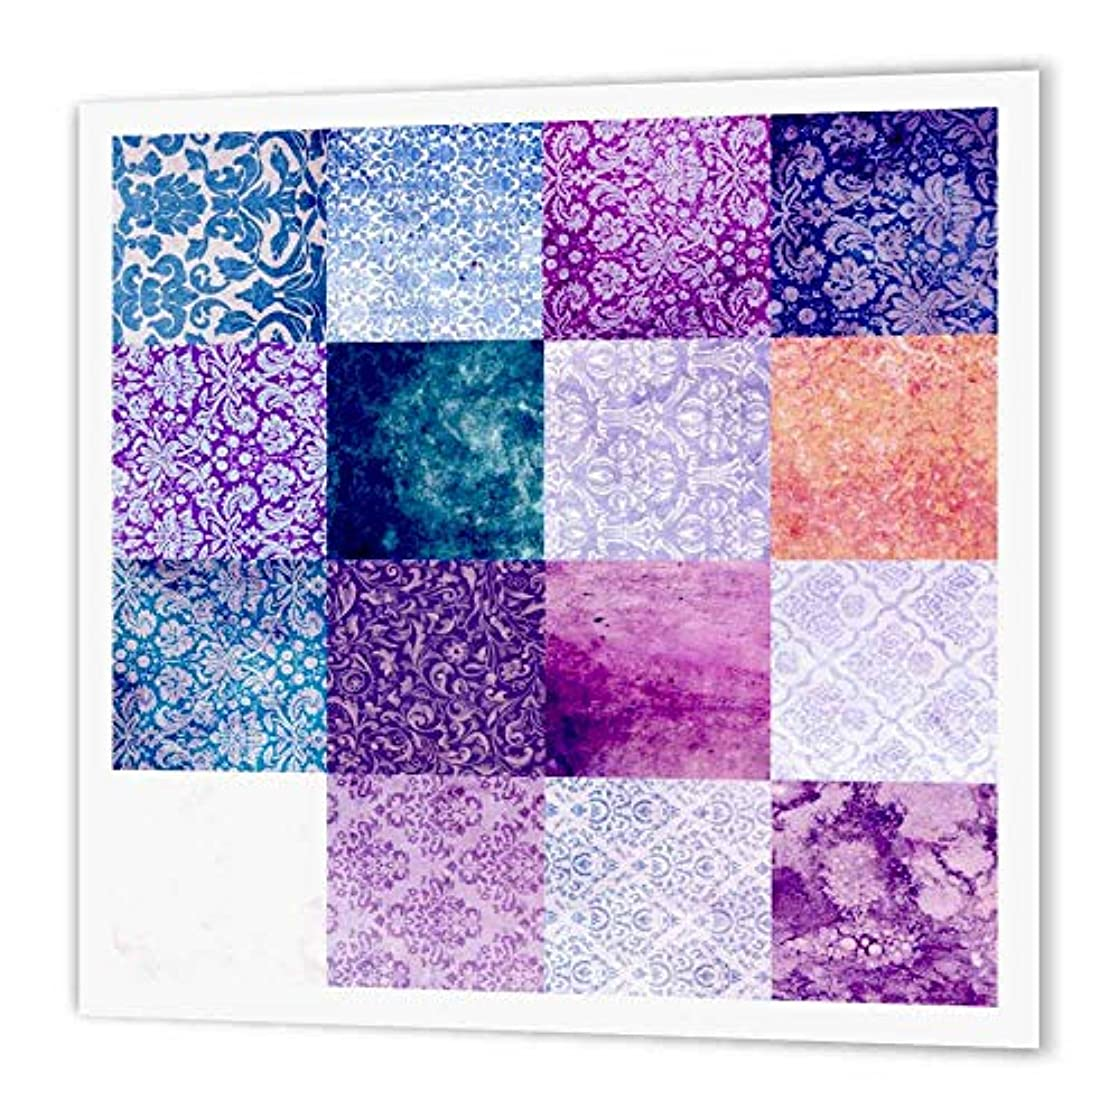 3dRose ht_113194_2 Purple Quilt Squares Grunge Pattern Print Vintage Grungy Damask Patterns Girly Patterned Patches Iron on Heat Transfer Paper for White Material, 6 by 6